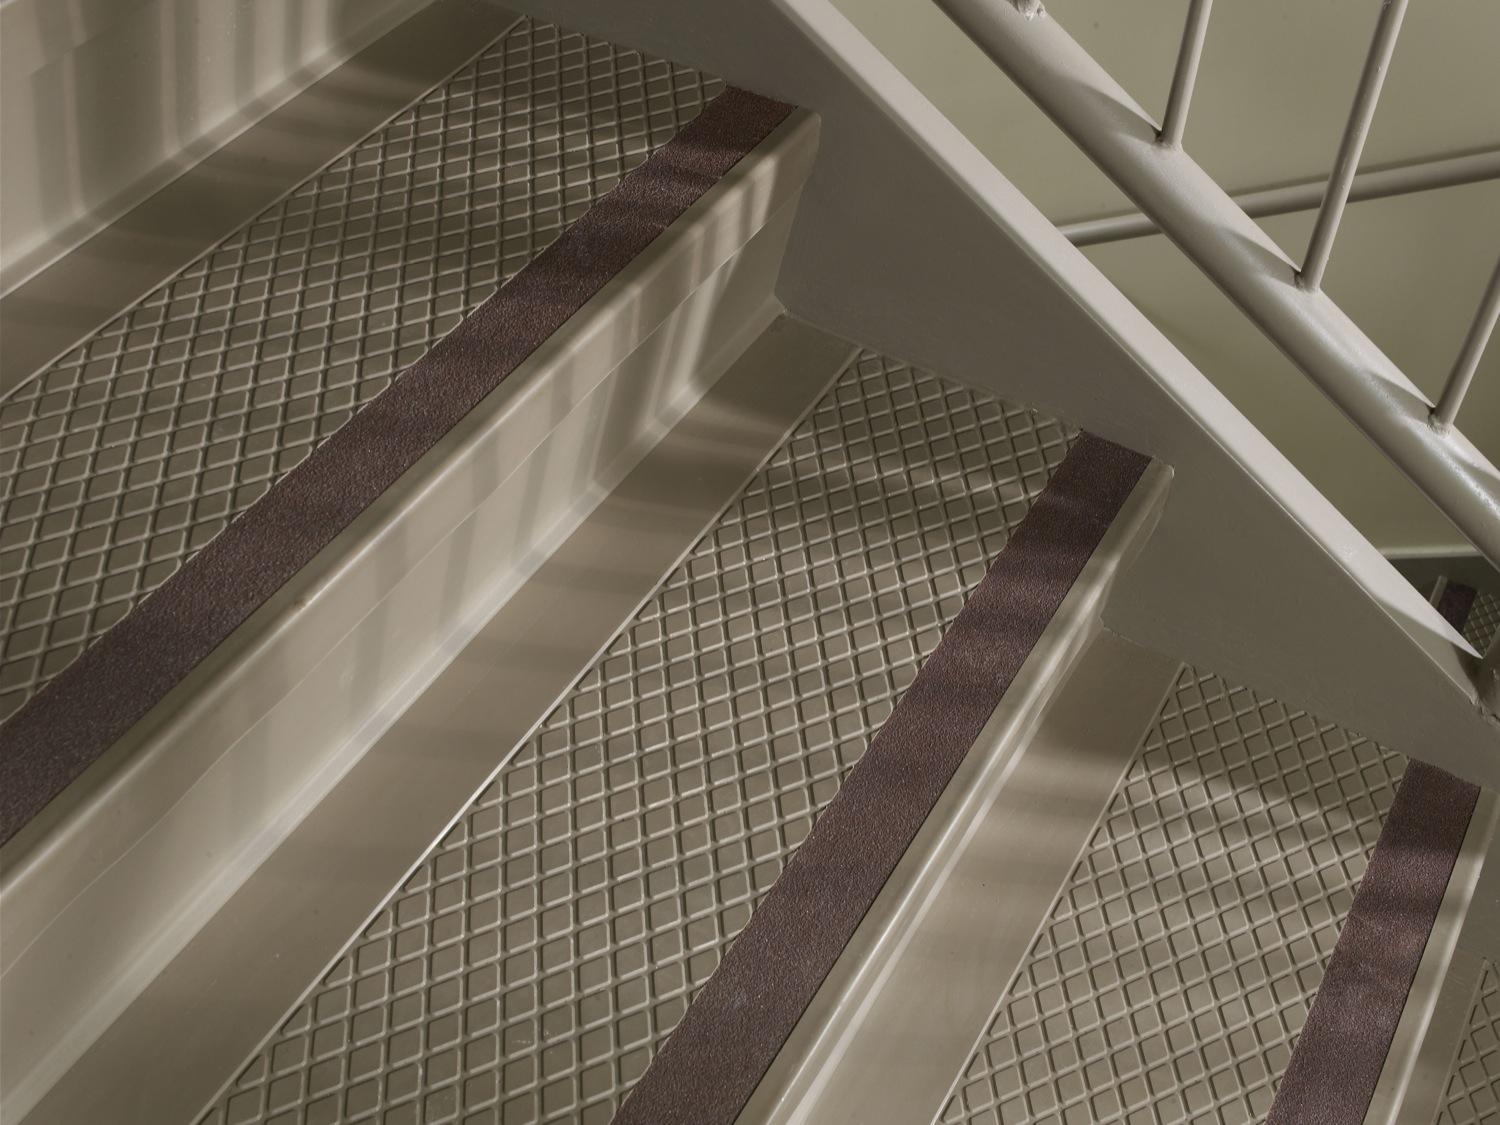 Flexco Rubber Flooring Vinyl Flooring Rubber Stair Treads Samples With Regard To Brown Stair Treads (Image 2 of 15)